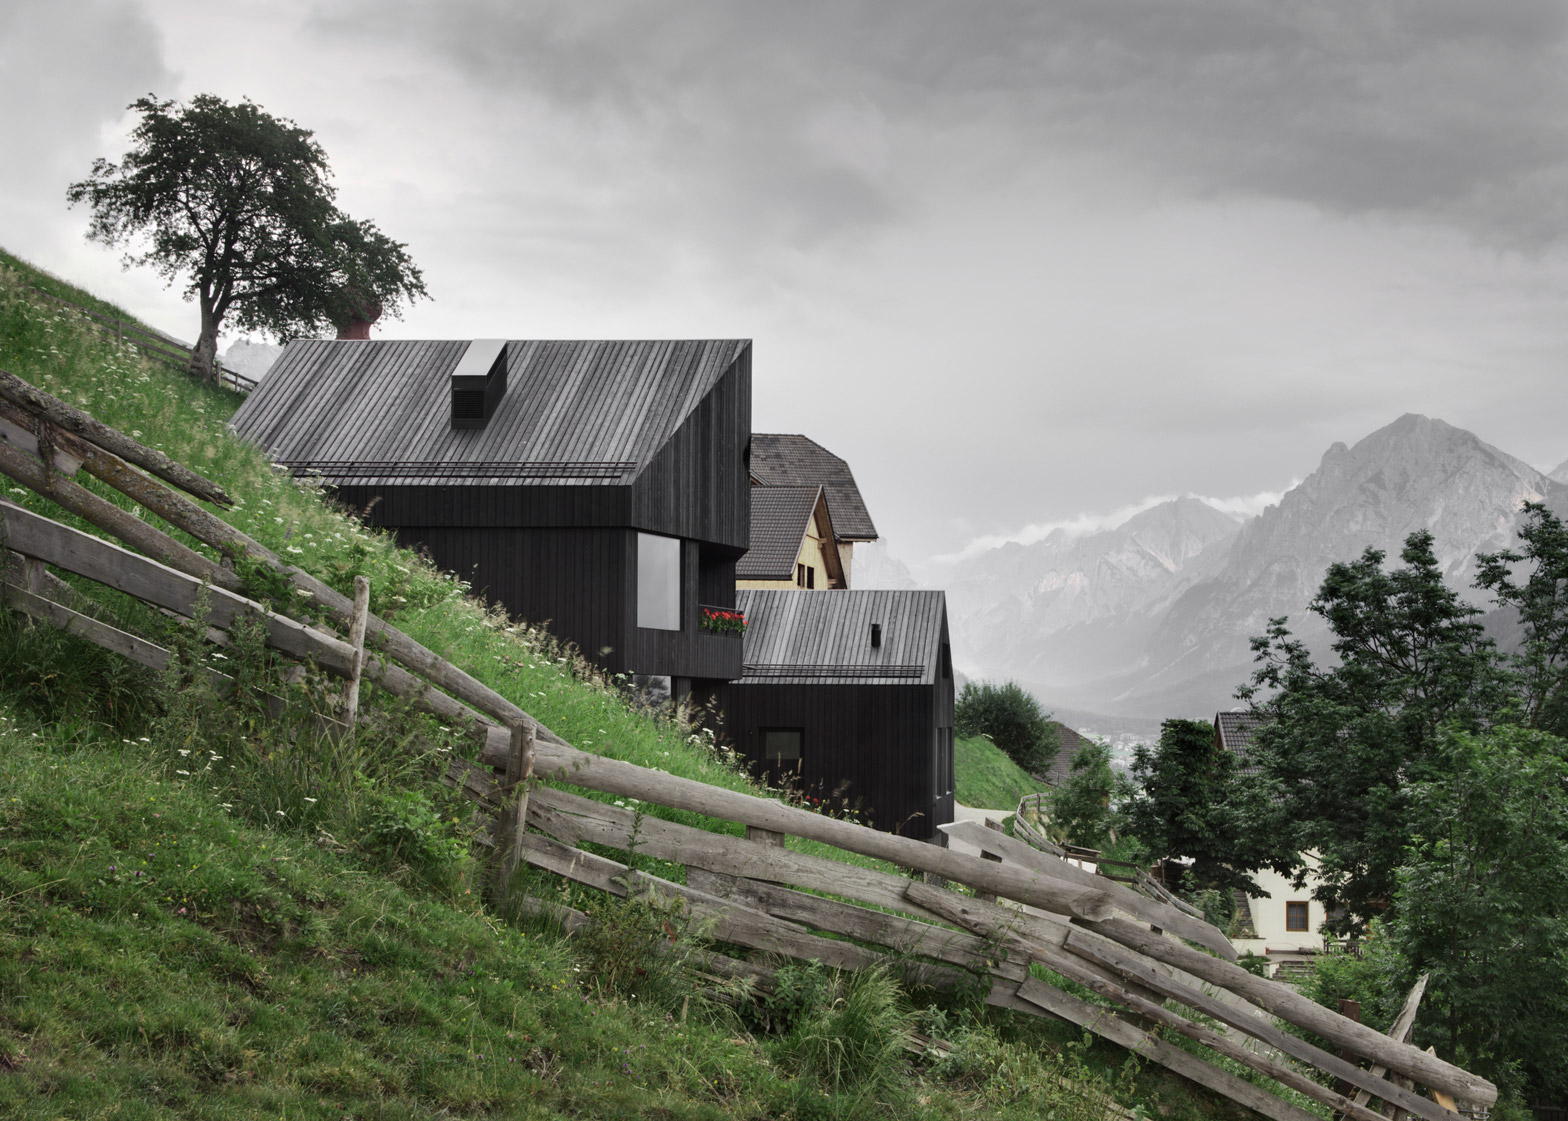 Chalet Pa Pedevilla by Pedevilla Architects